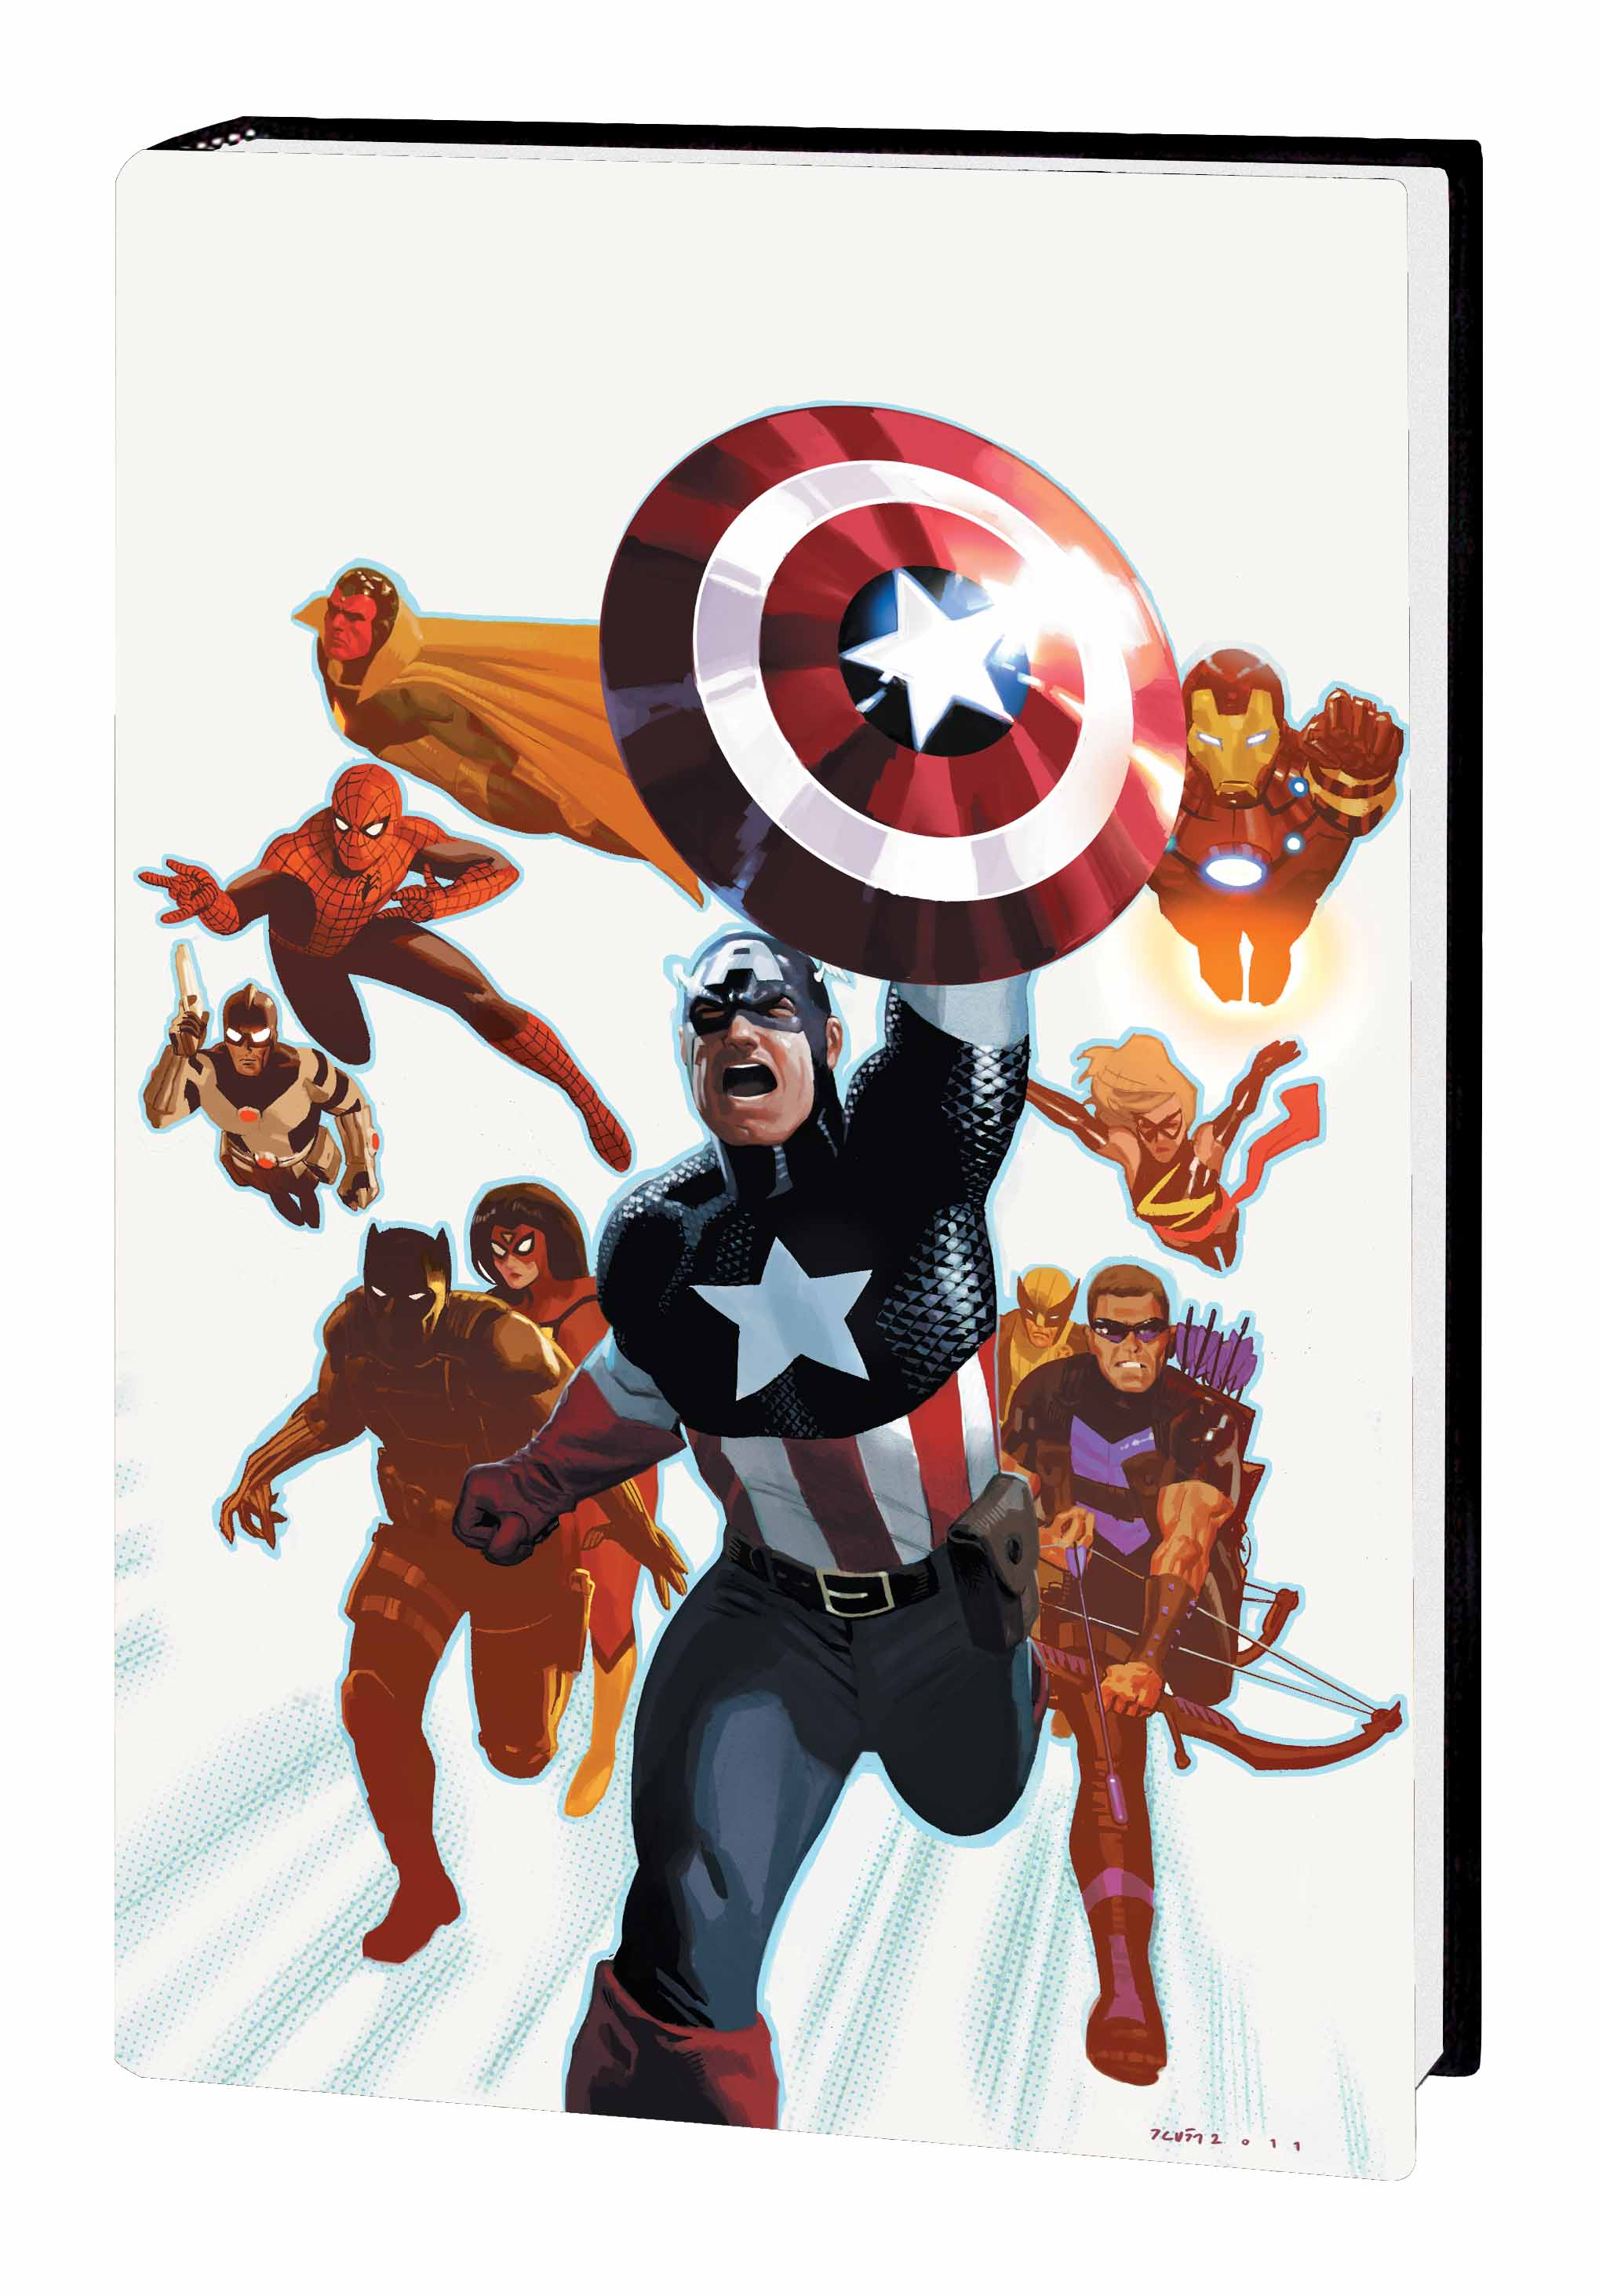 AVENGERS BY BRIAN MICHAEL BENDIS VOL. 3 PREMIERE HC (Hardcover)